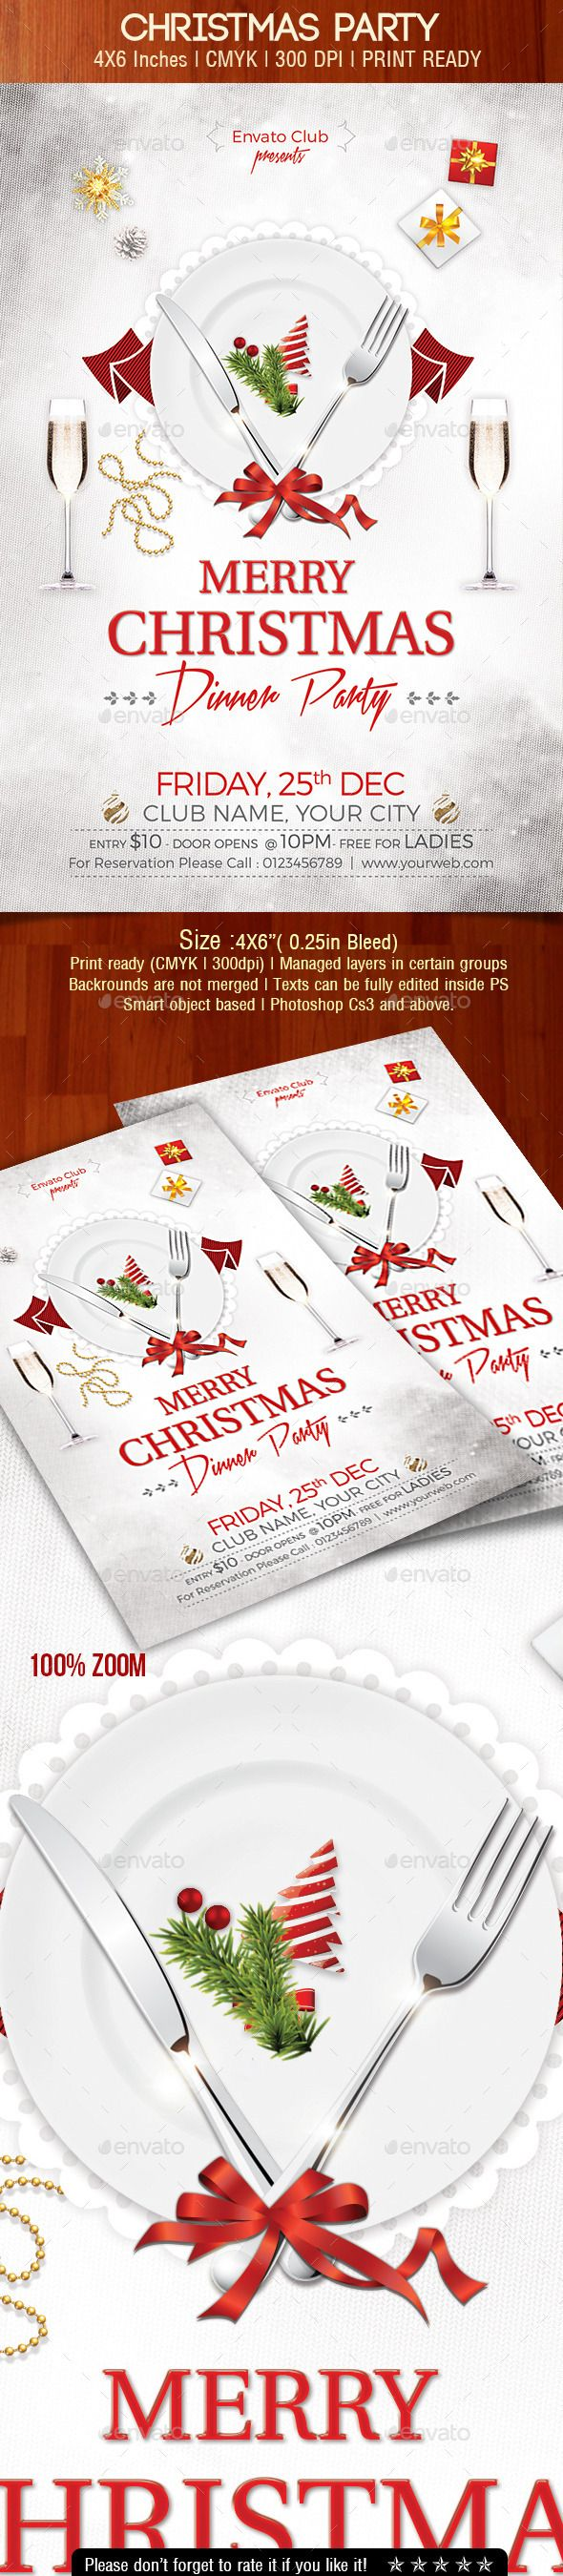 the 39 best christmas party flyer images on pinterest christmas